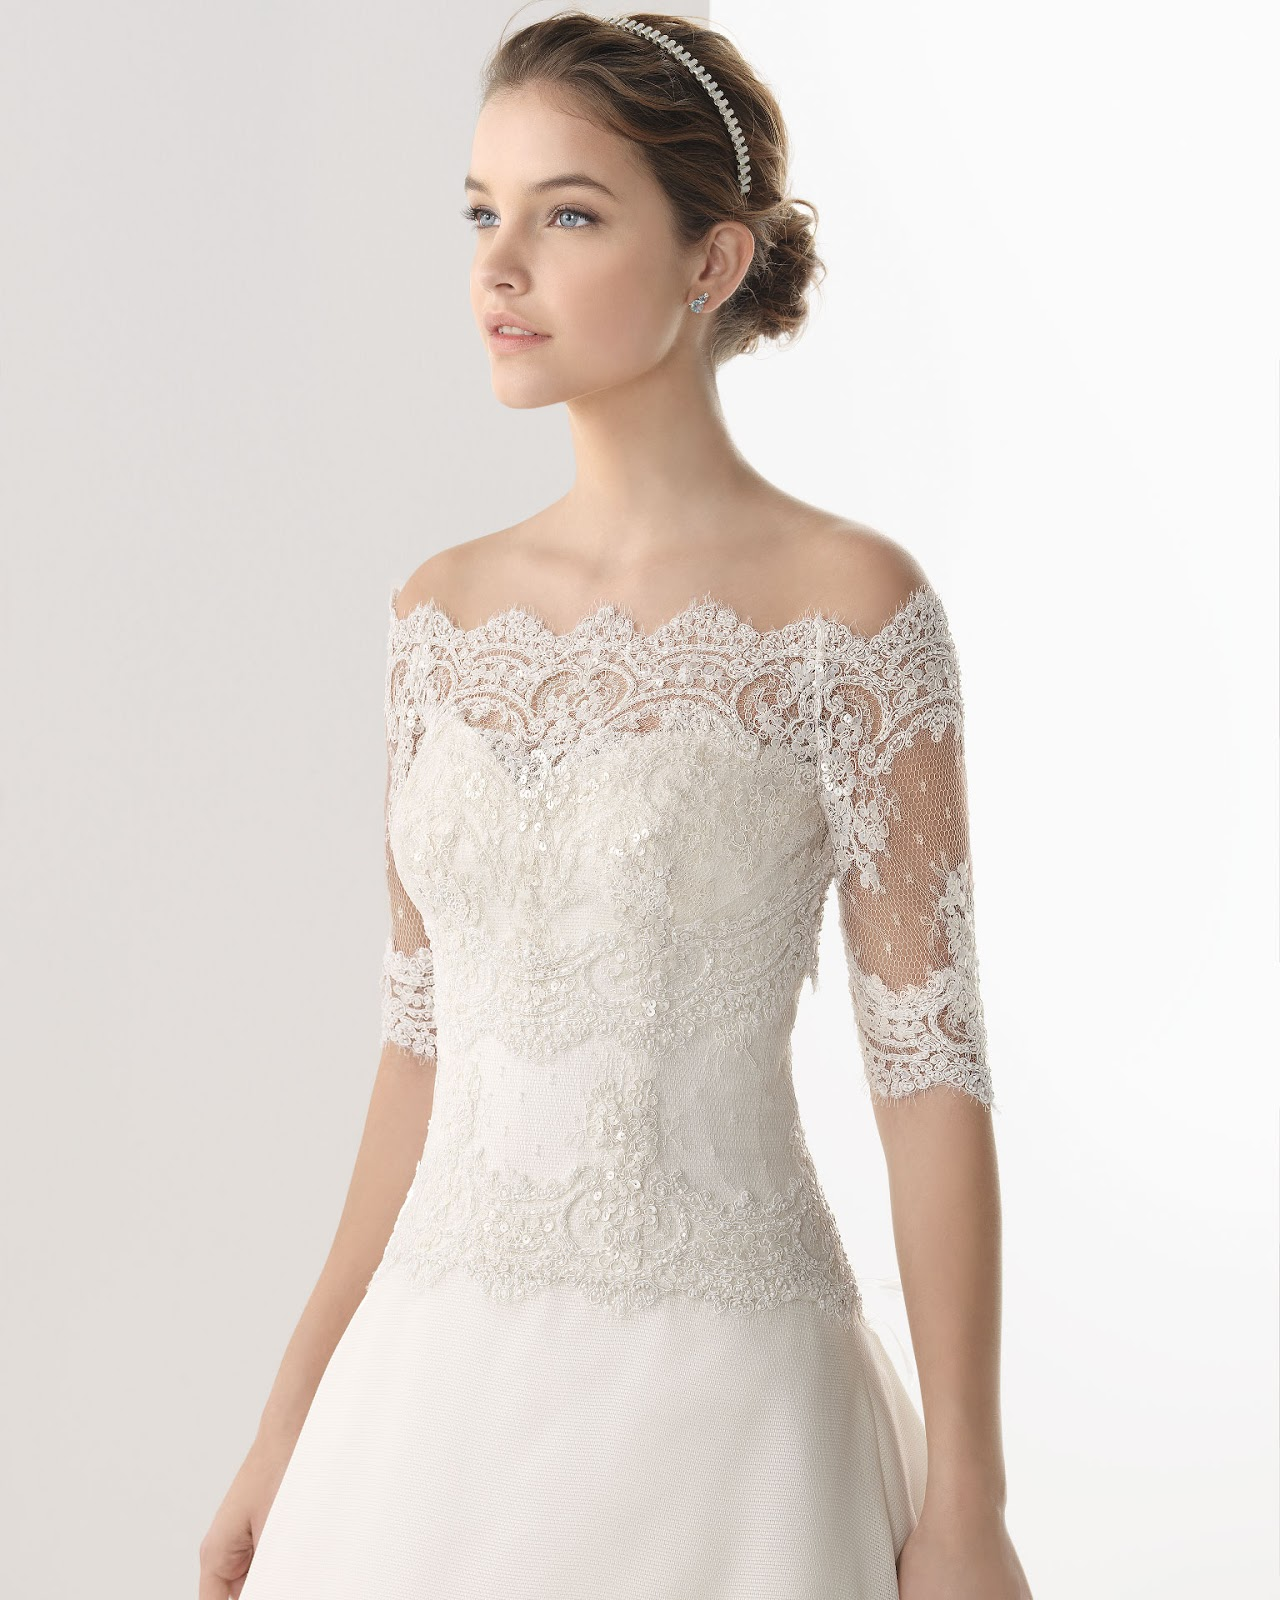 Lace Wedding Dresses: DressyBridal: Wedding Dresses With Lace Long Sleeves And